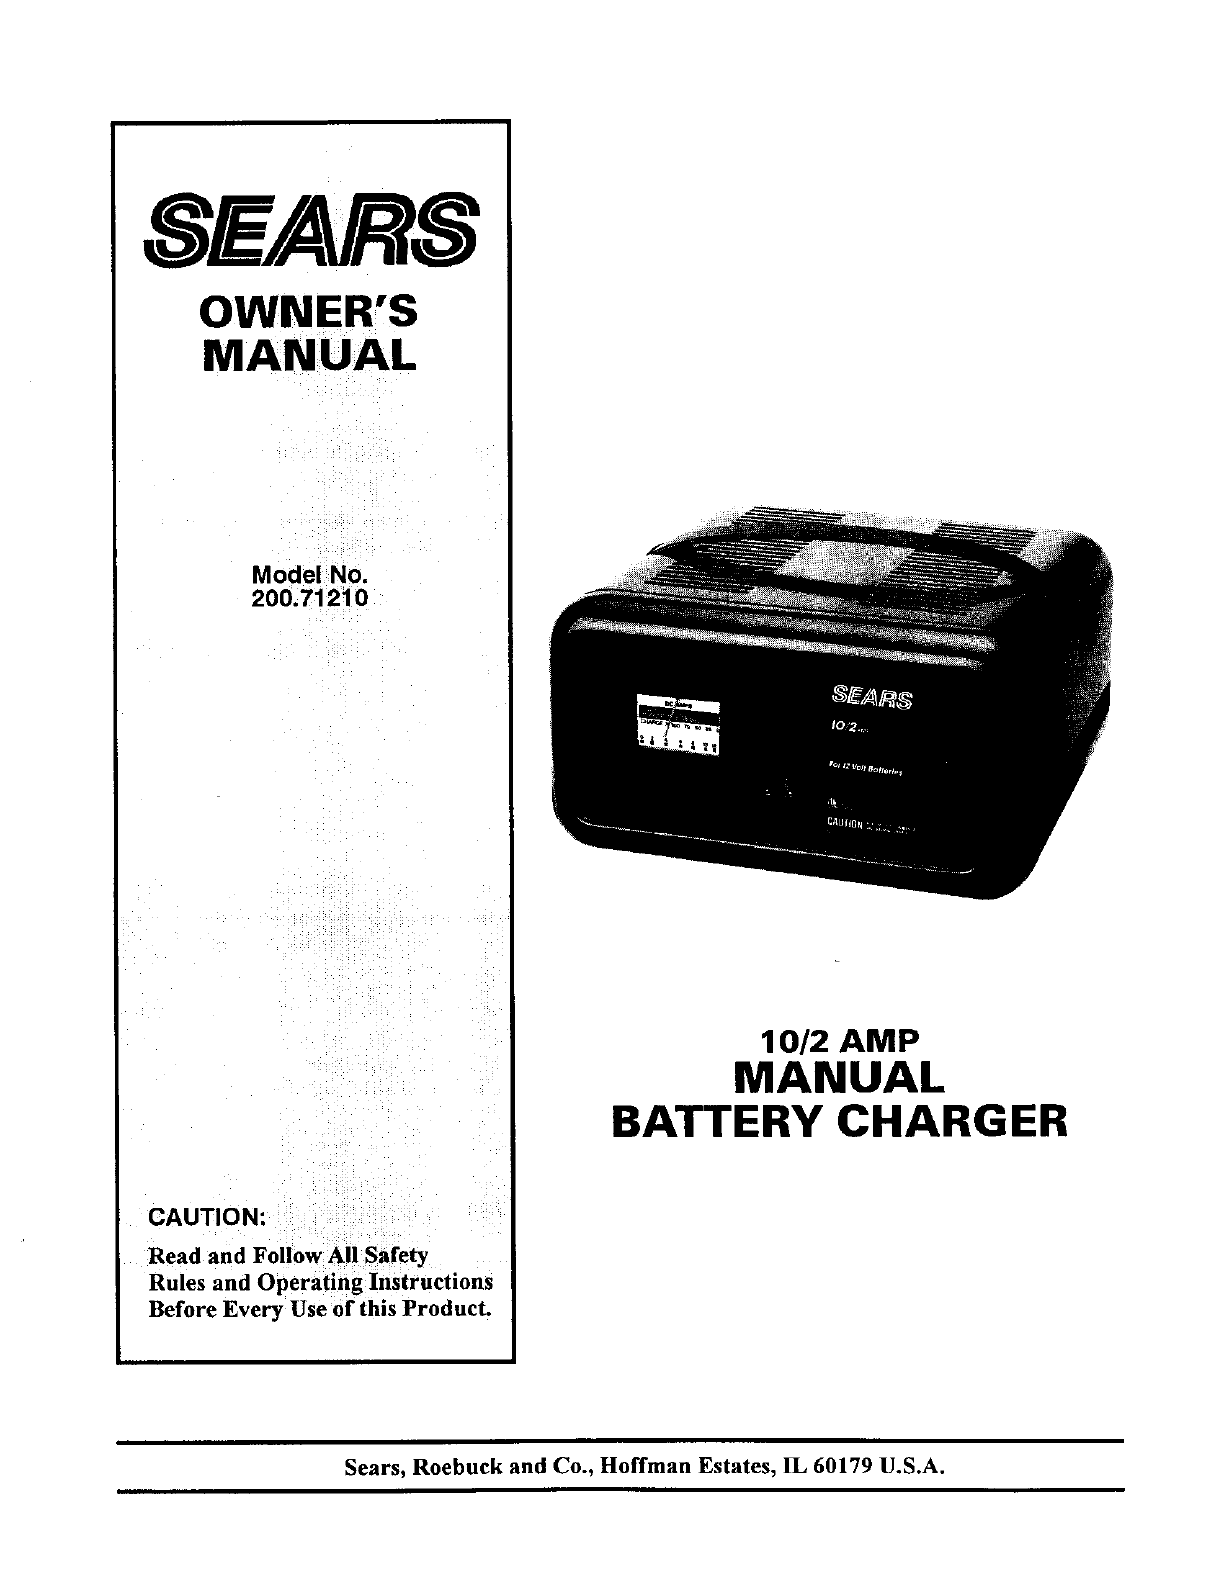 sears battery charger 200 7121 user guide manualsonline com sears manual battery charger 10 2 50 sears 1.5 amp manual battery charger